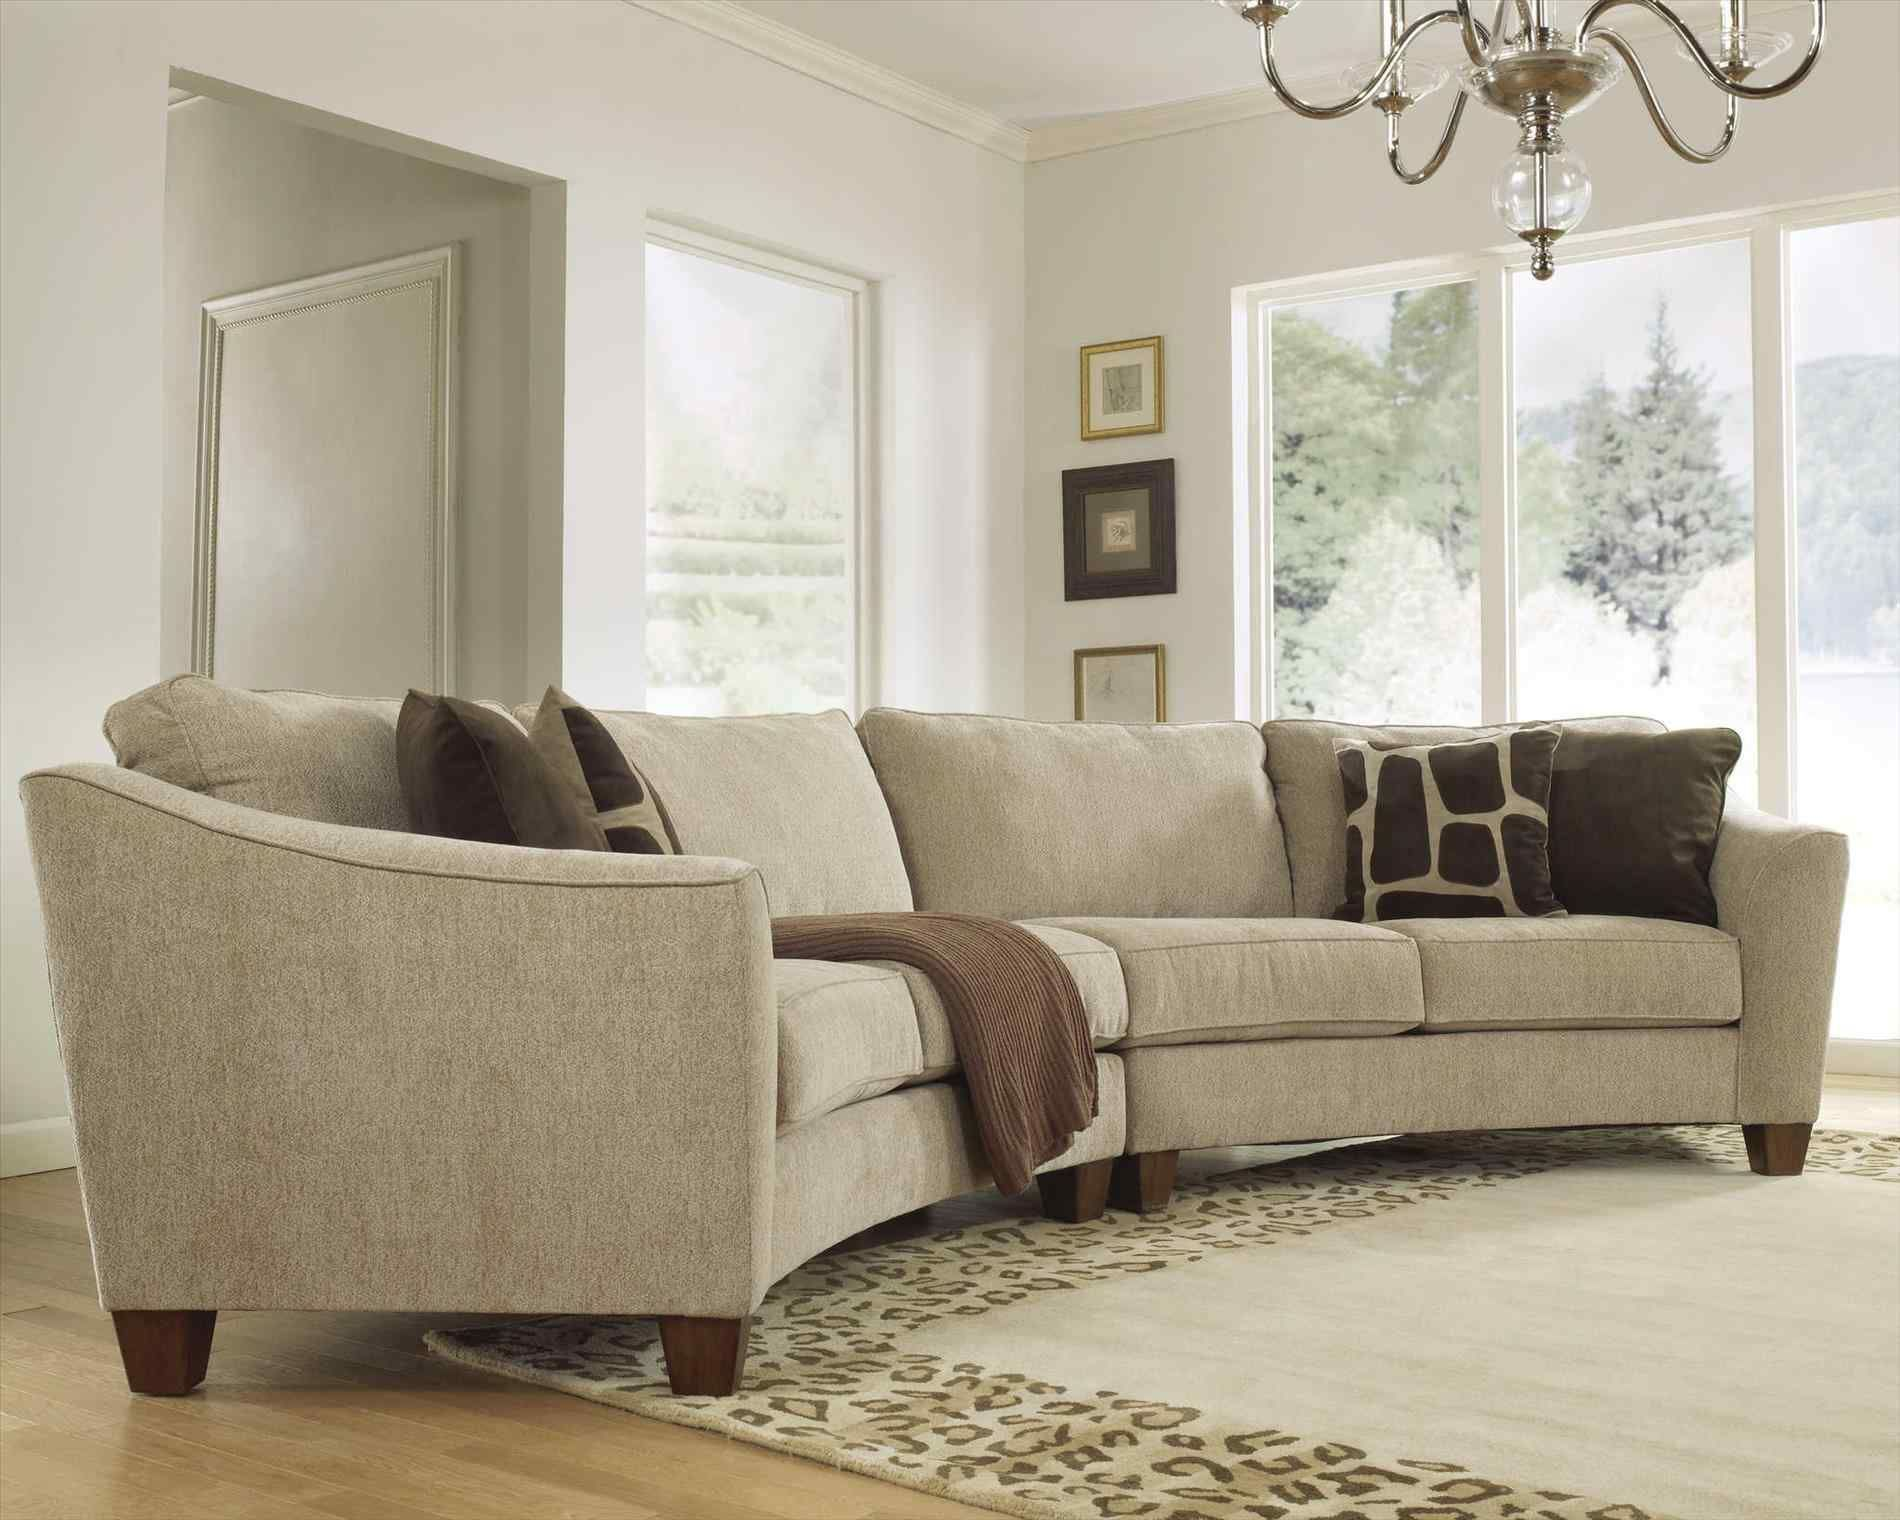 Charming Ideas For Living Room Design White Leather Fancy Curved White Ballard  Designs Sectional Sofa Leather Fancy